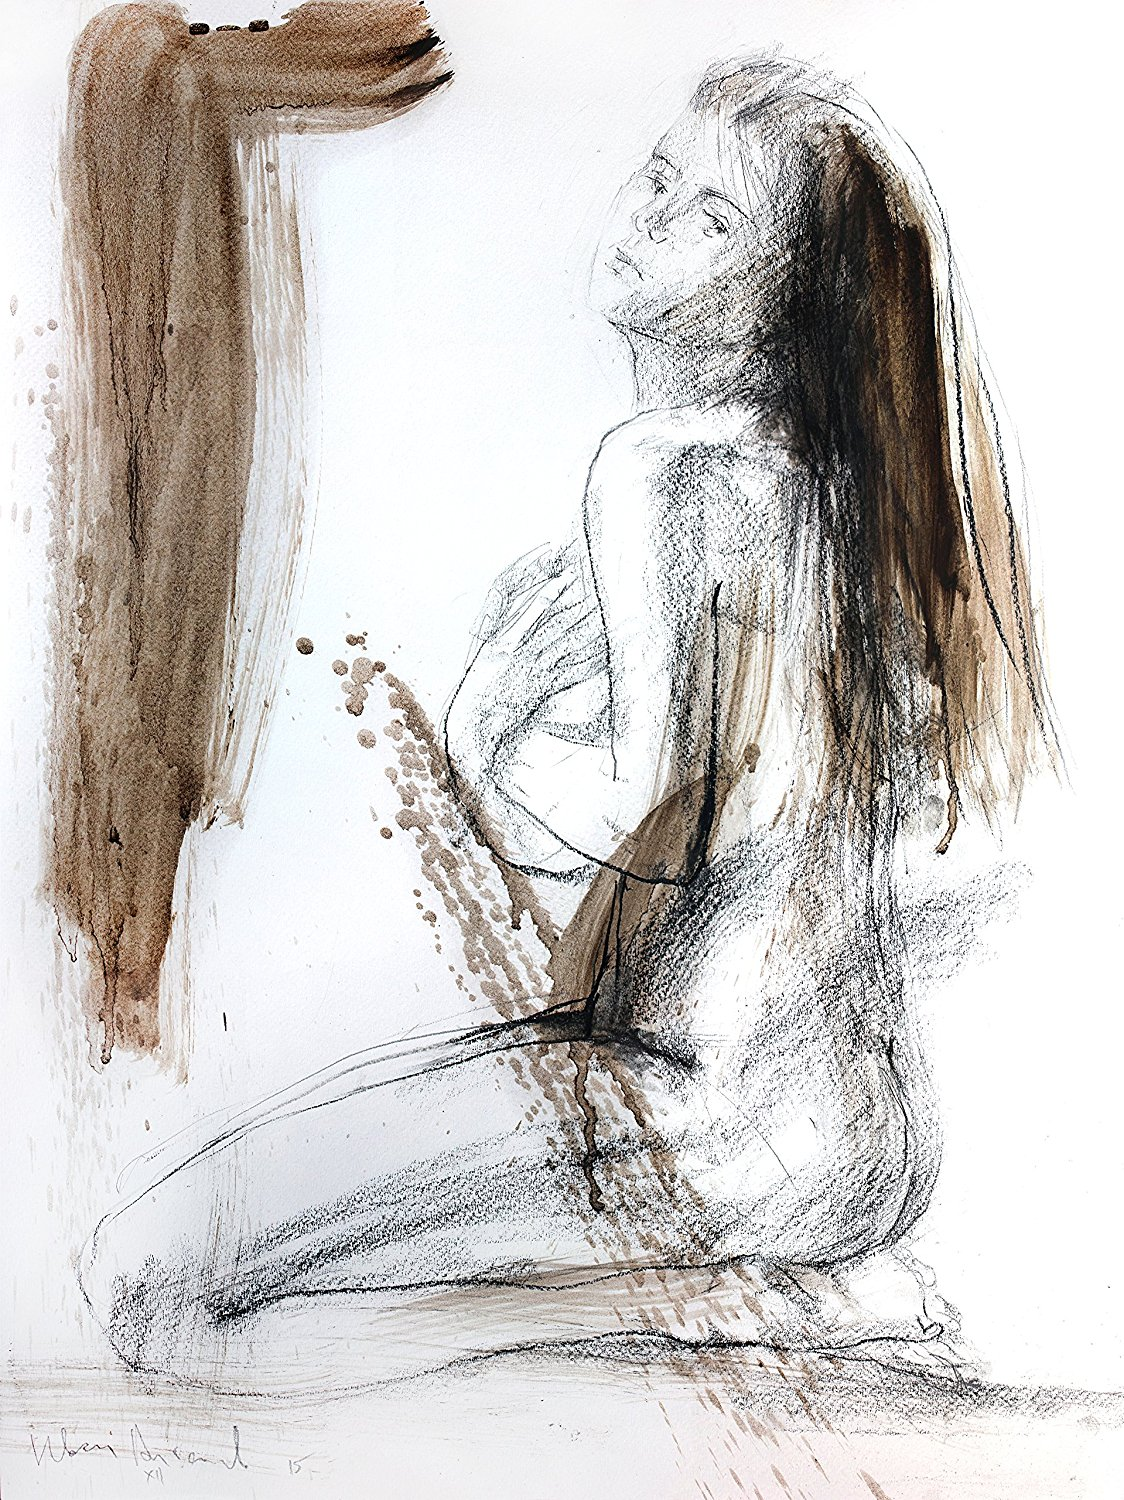 Figurative Wall art Original drawing Charcoal Woman sketch Abstract Female Figure art sketch Mixed media graphic artwork Woman sketch